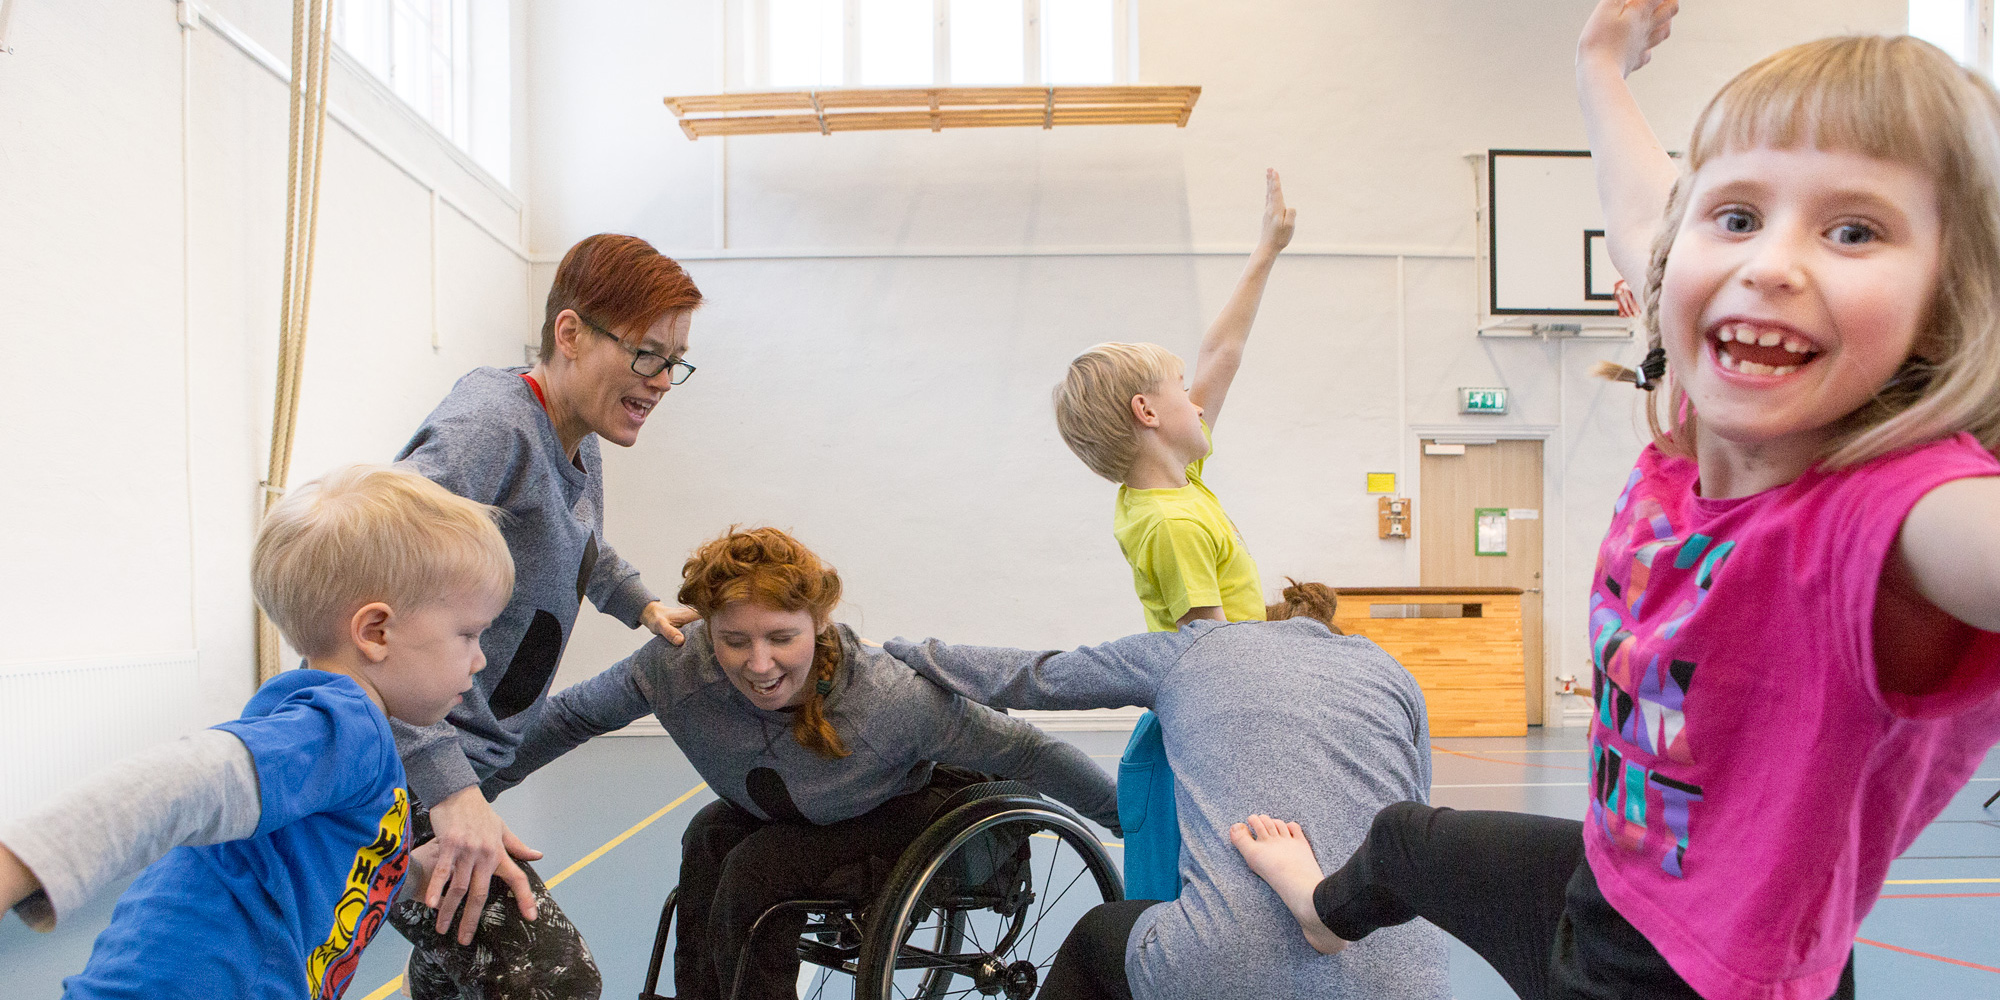 Image from dance workshop for children with dancers from Spinn. Photo: Maja Blomqvist